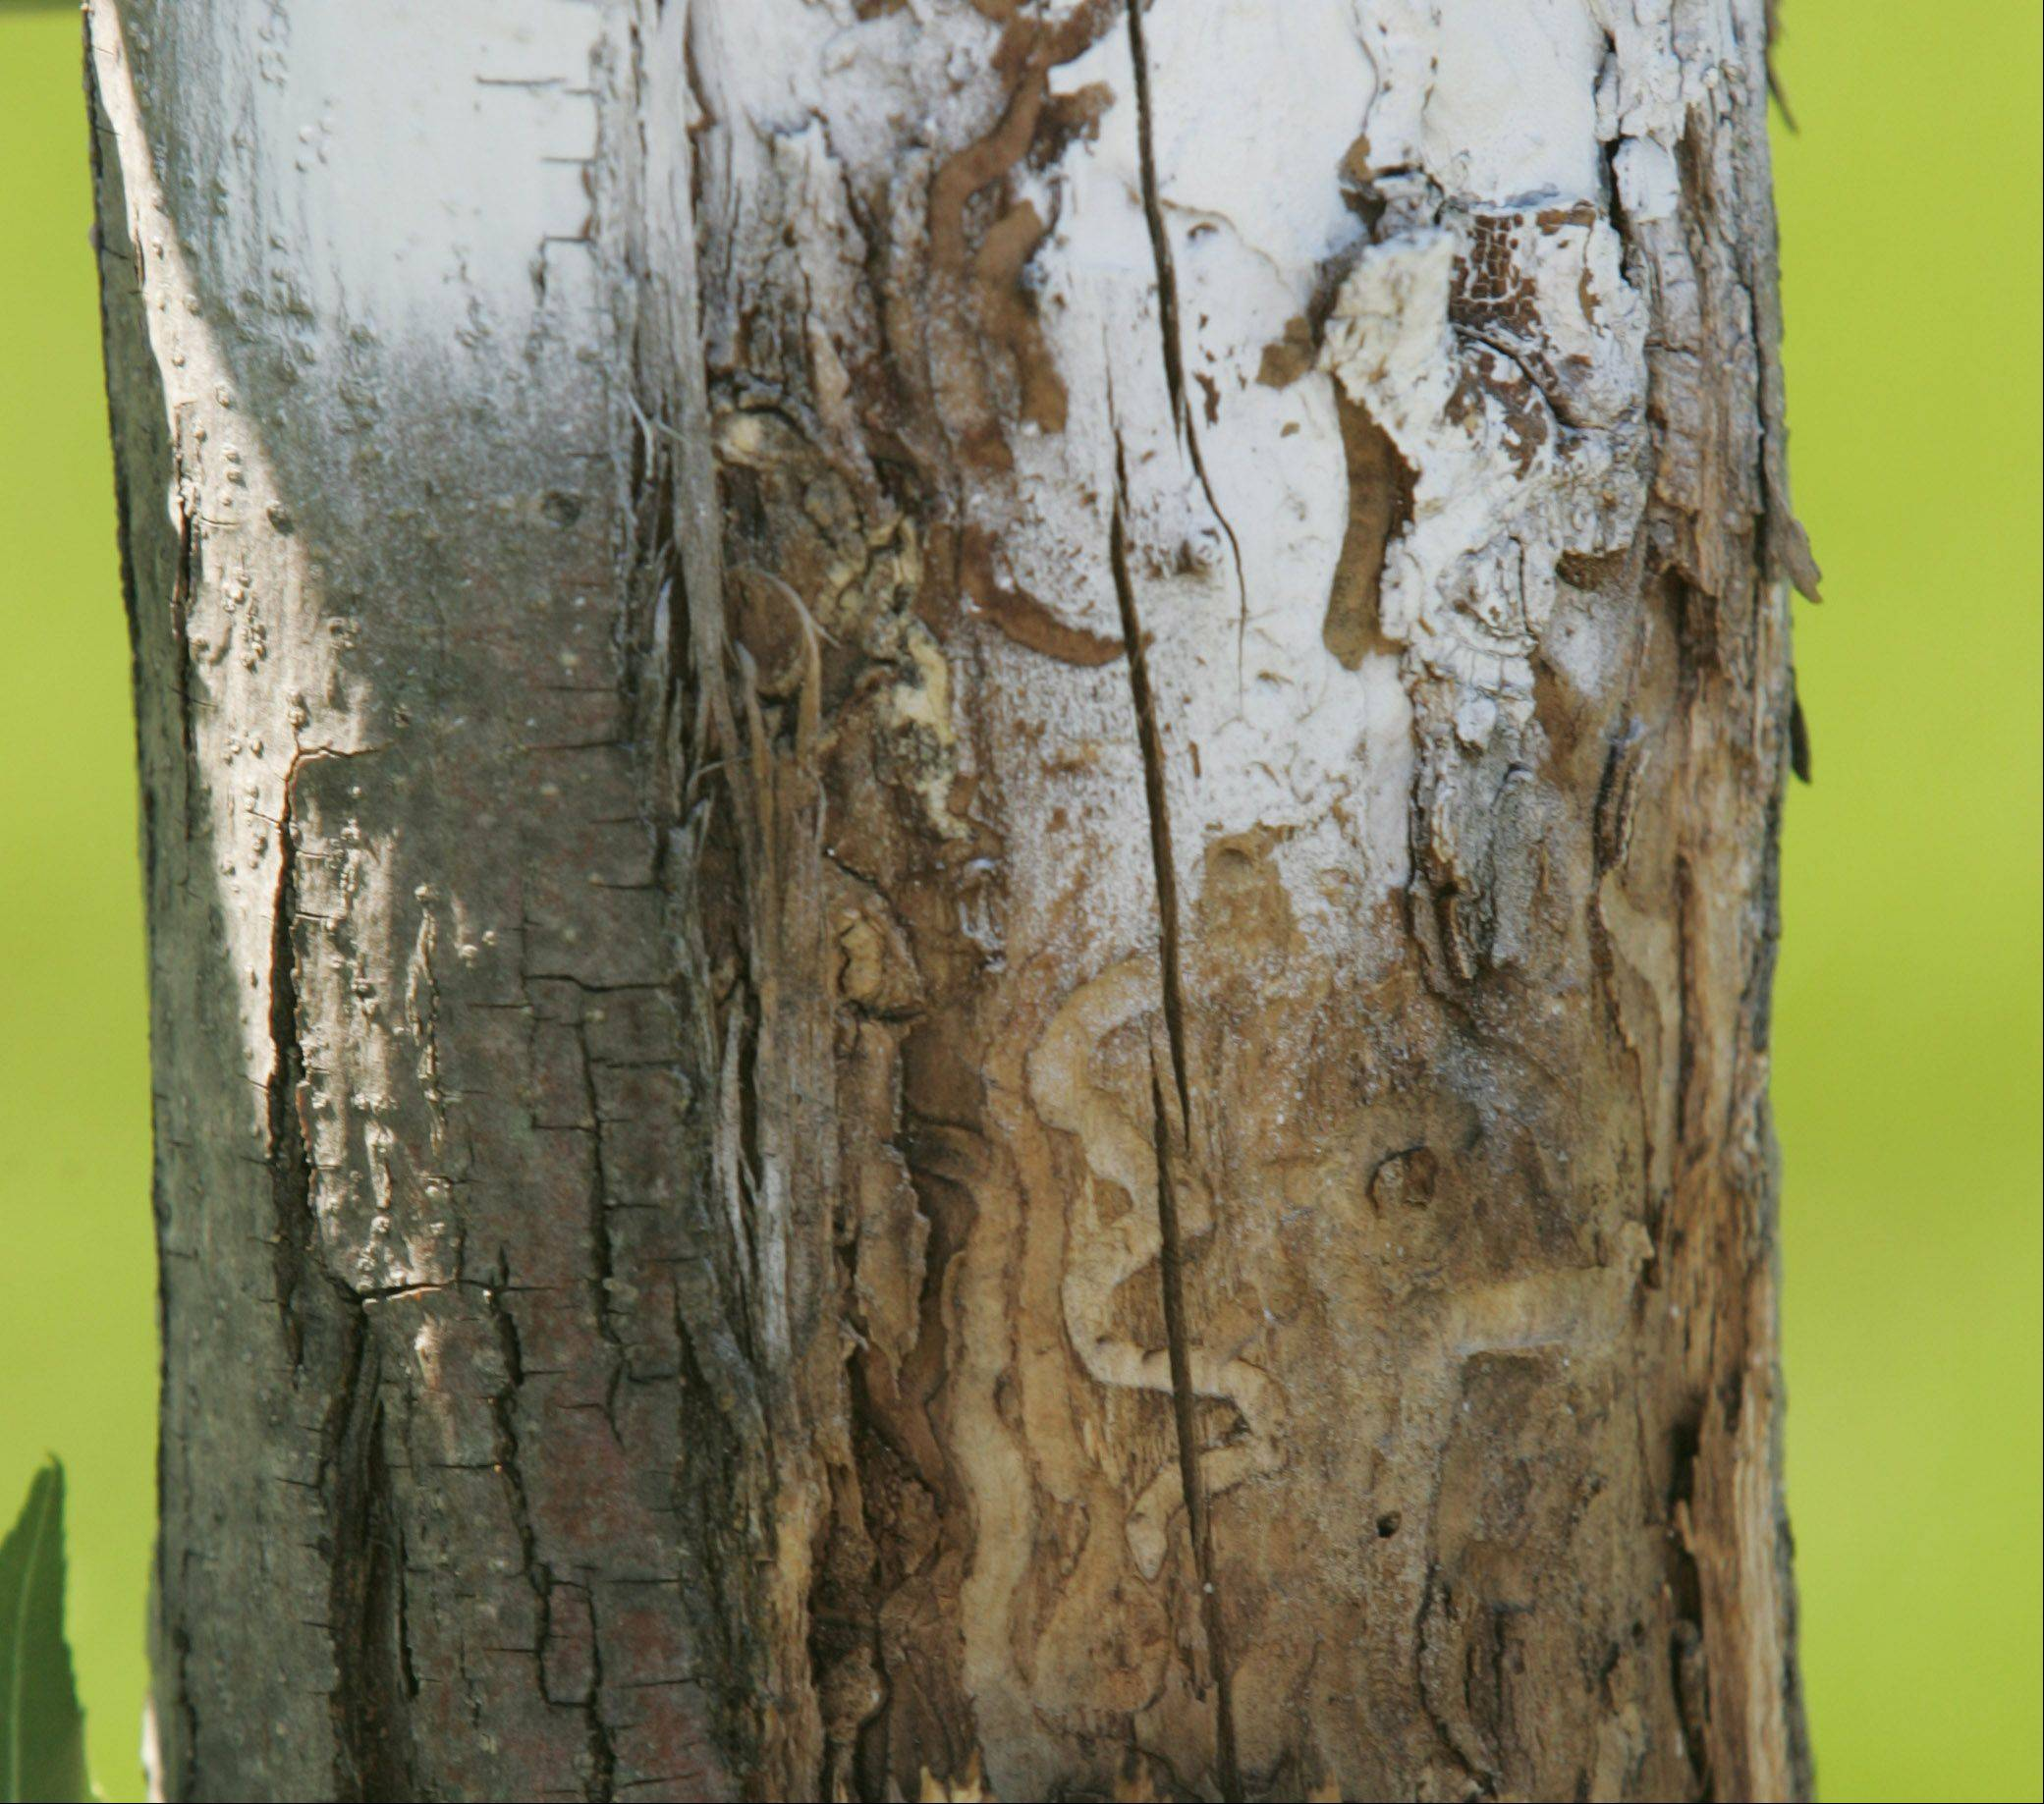 Carpentersville aggressively goes after ash borer